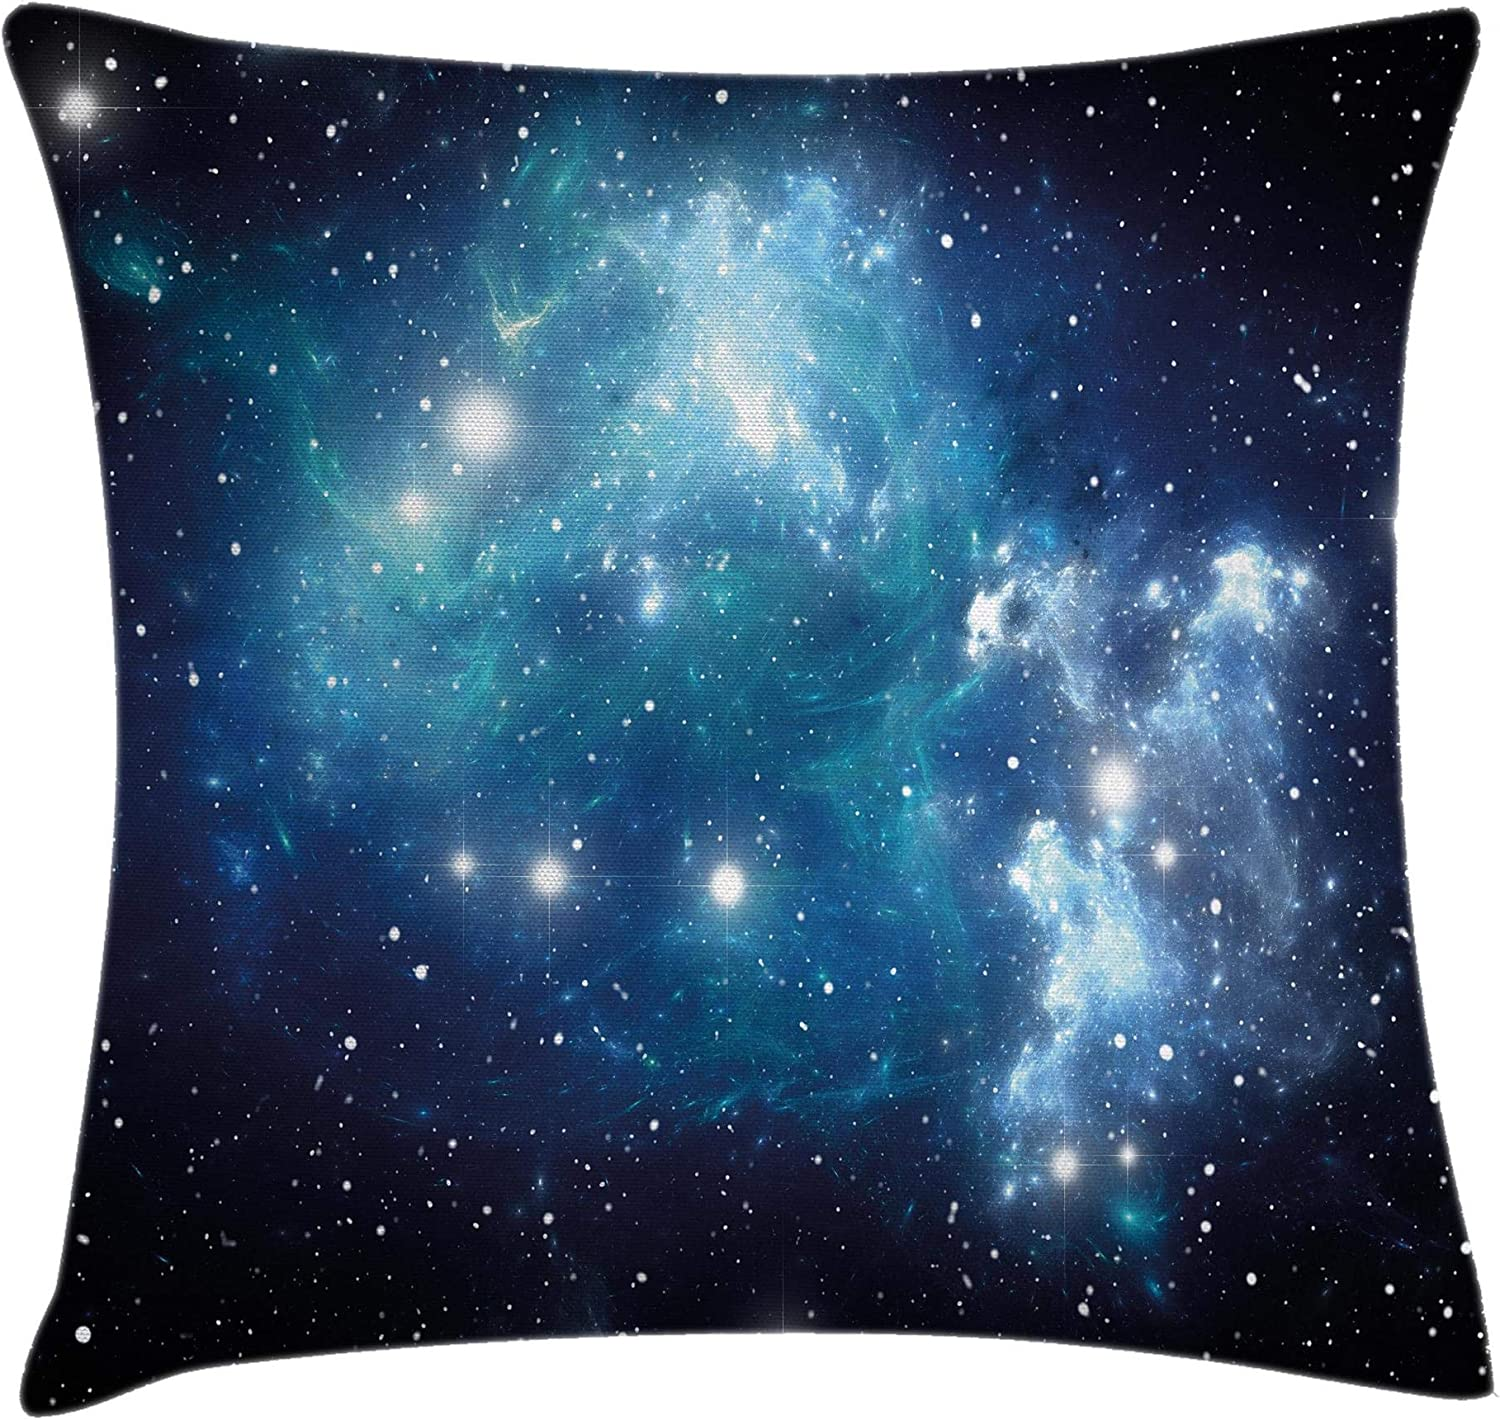 Amazon Com Ambesonne Space Throw Pillow Cushion Cover Vibrant Celestial Supernova Scenery Energy Andromeda Mystical Outer Space Picture Decorative Square Accent Pillow Case 20 X 20 Blue Home Kitchen